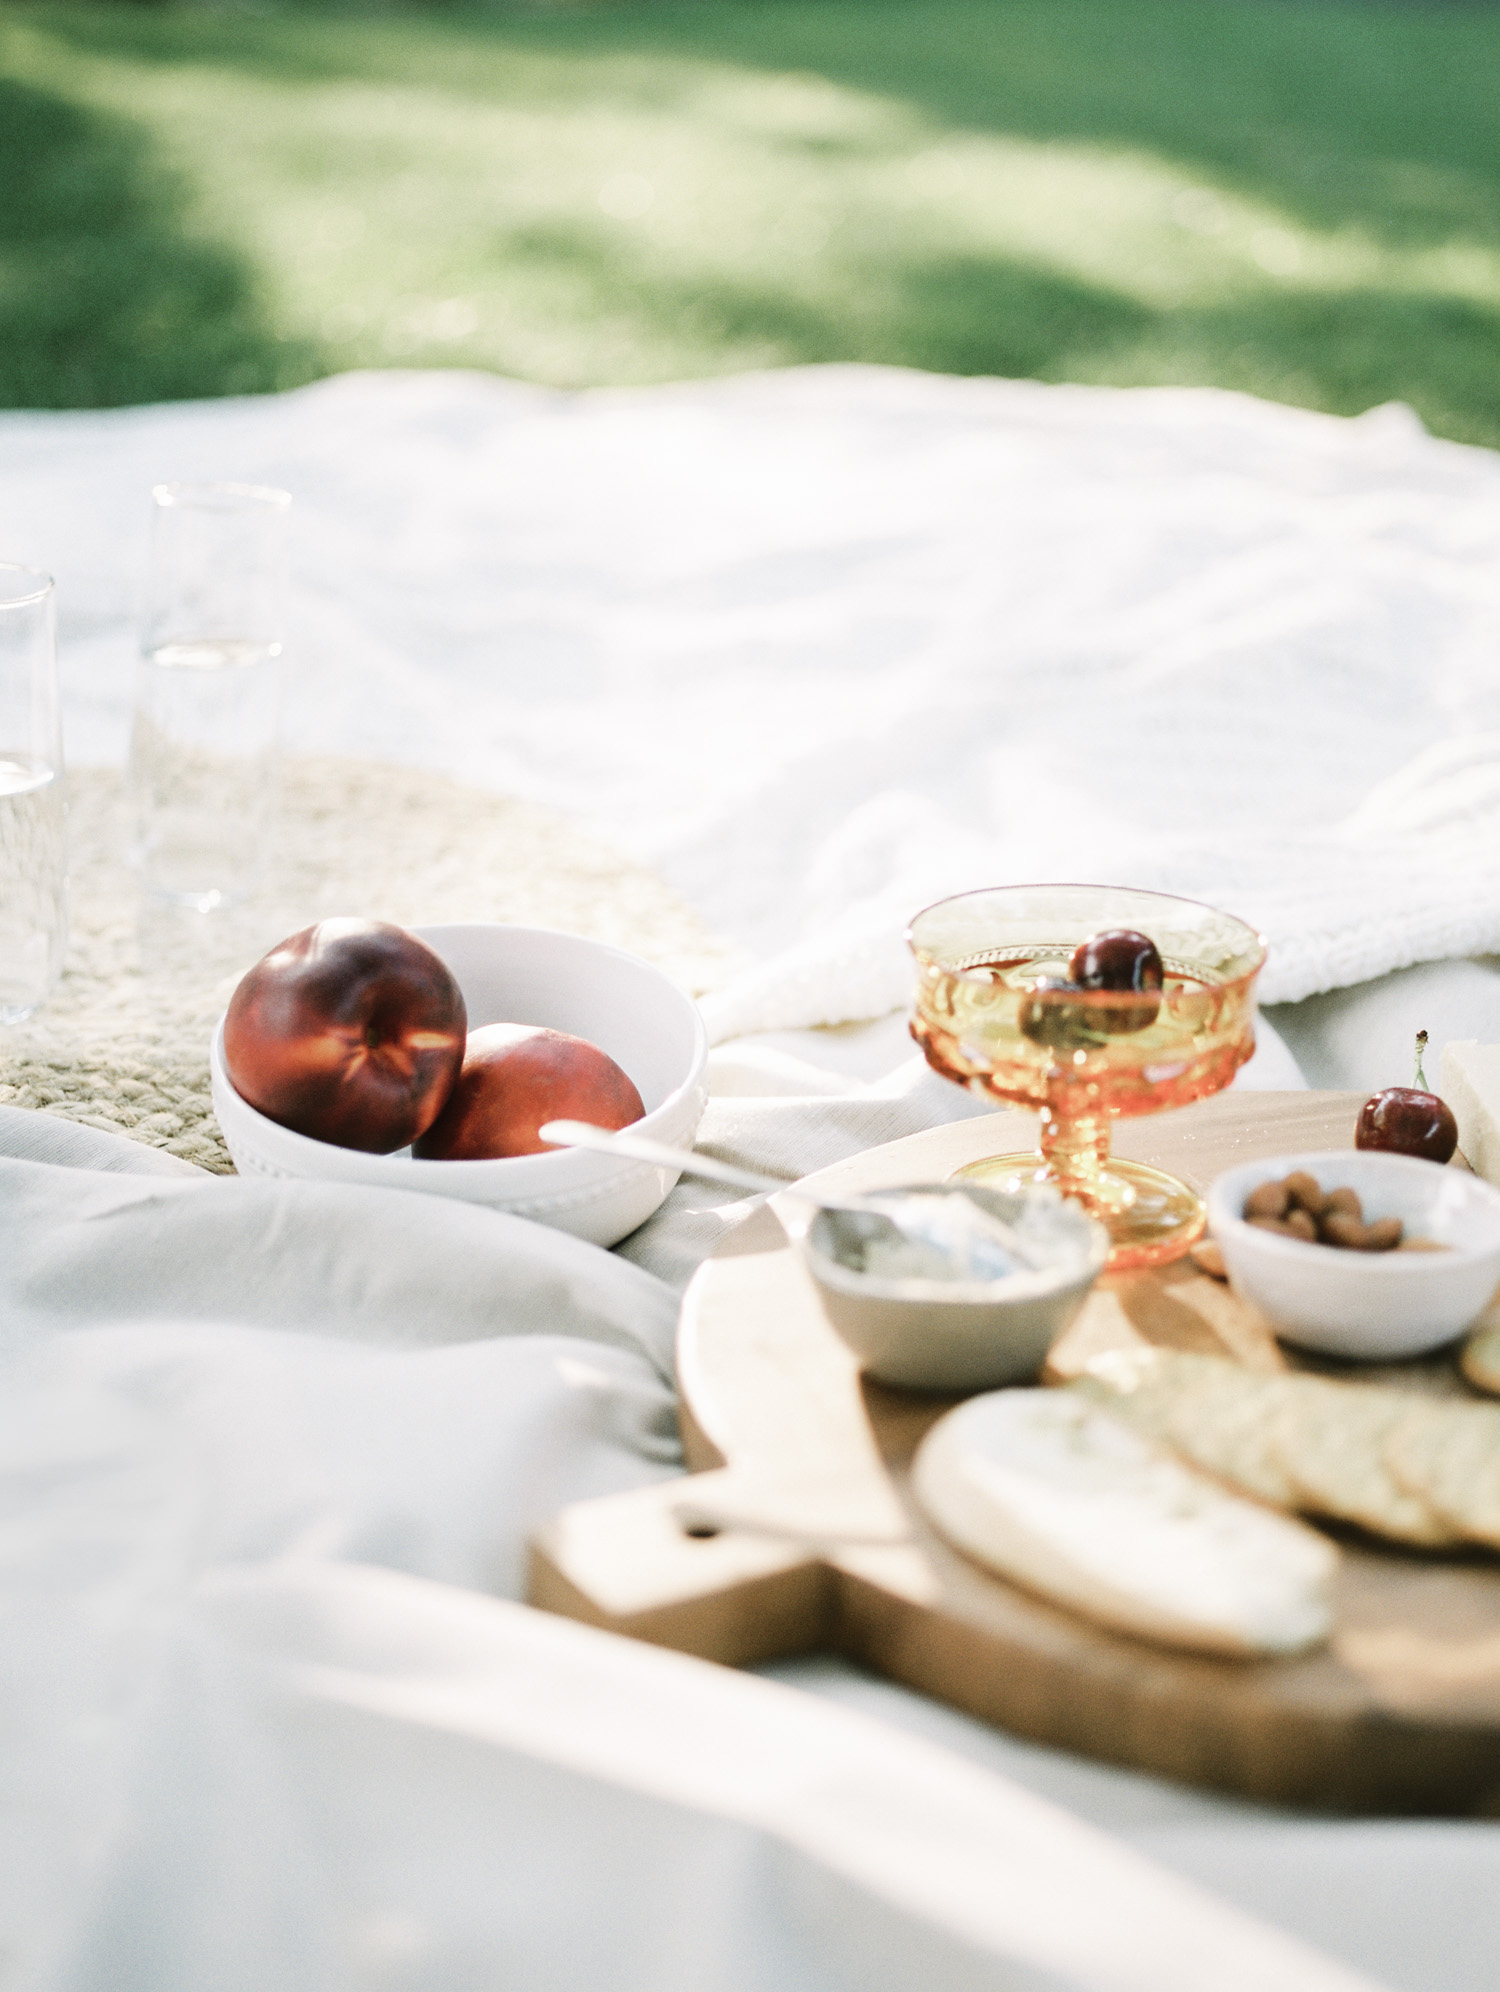 Peaches, cherries, and remnants of a vegan charcuterie spread rest on a picnic blanket after a Detroit couple's at home photos